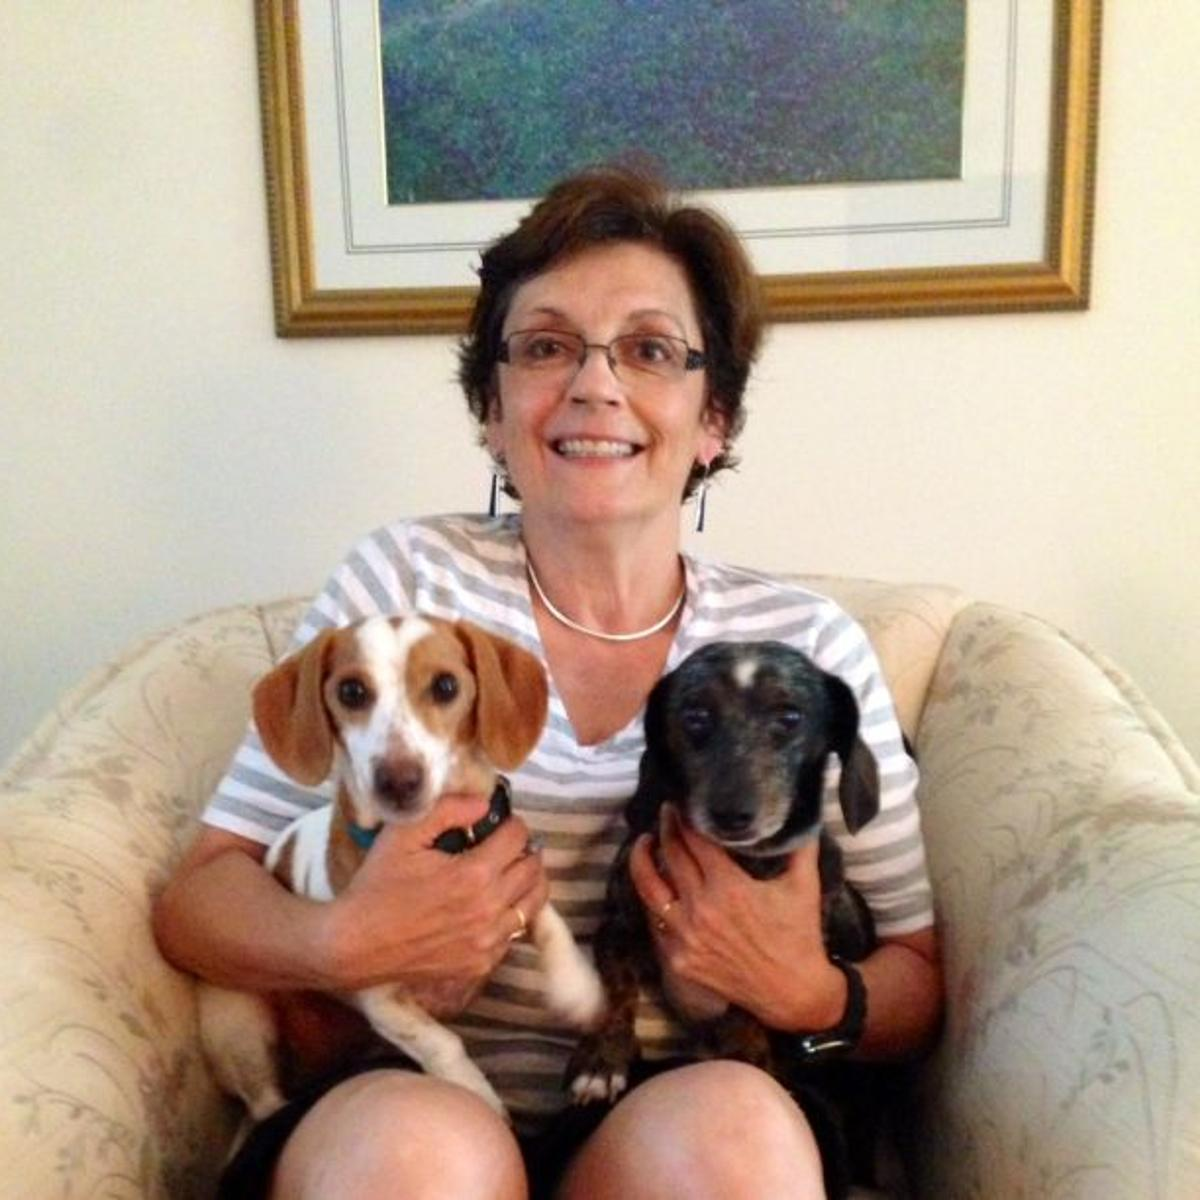 Pet adoption turns into volunteer mission for dachshund fan